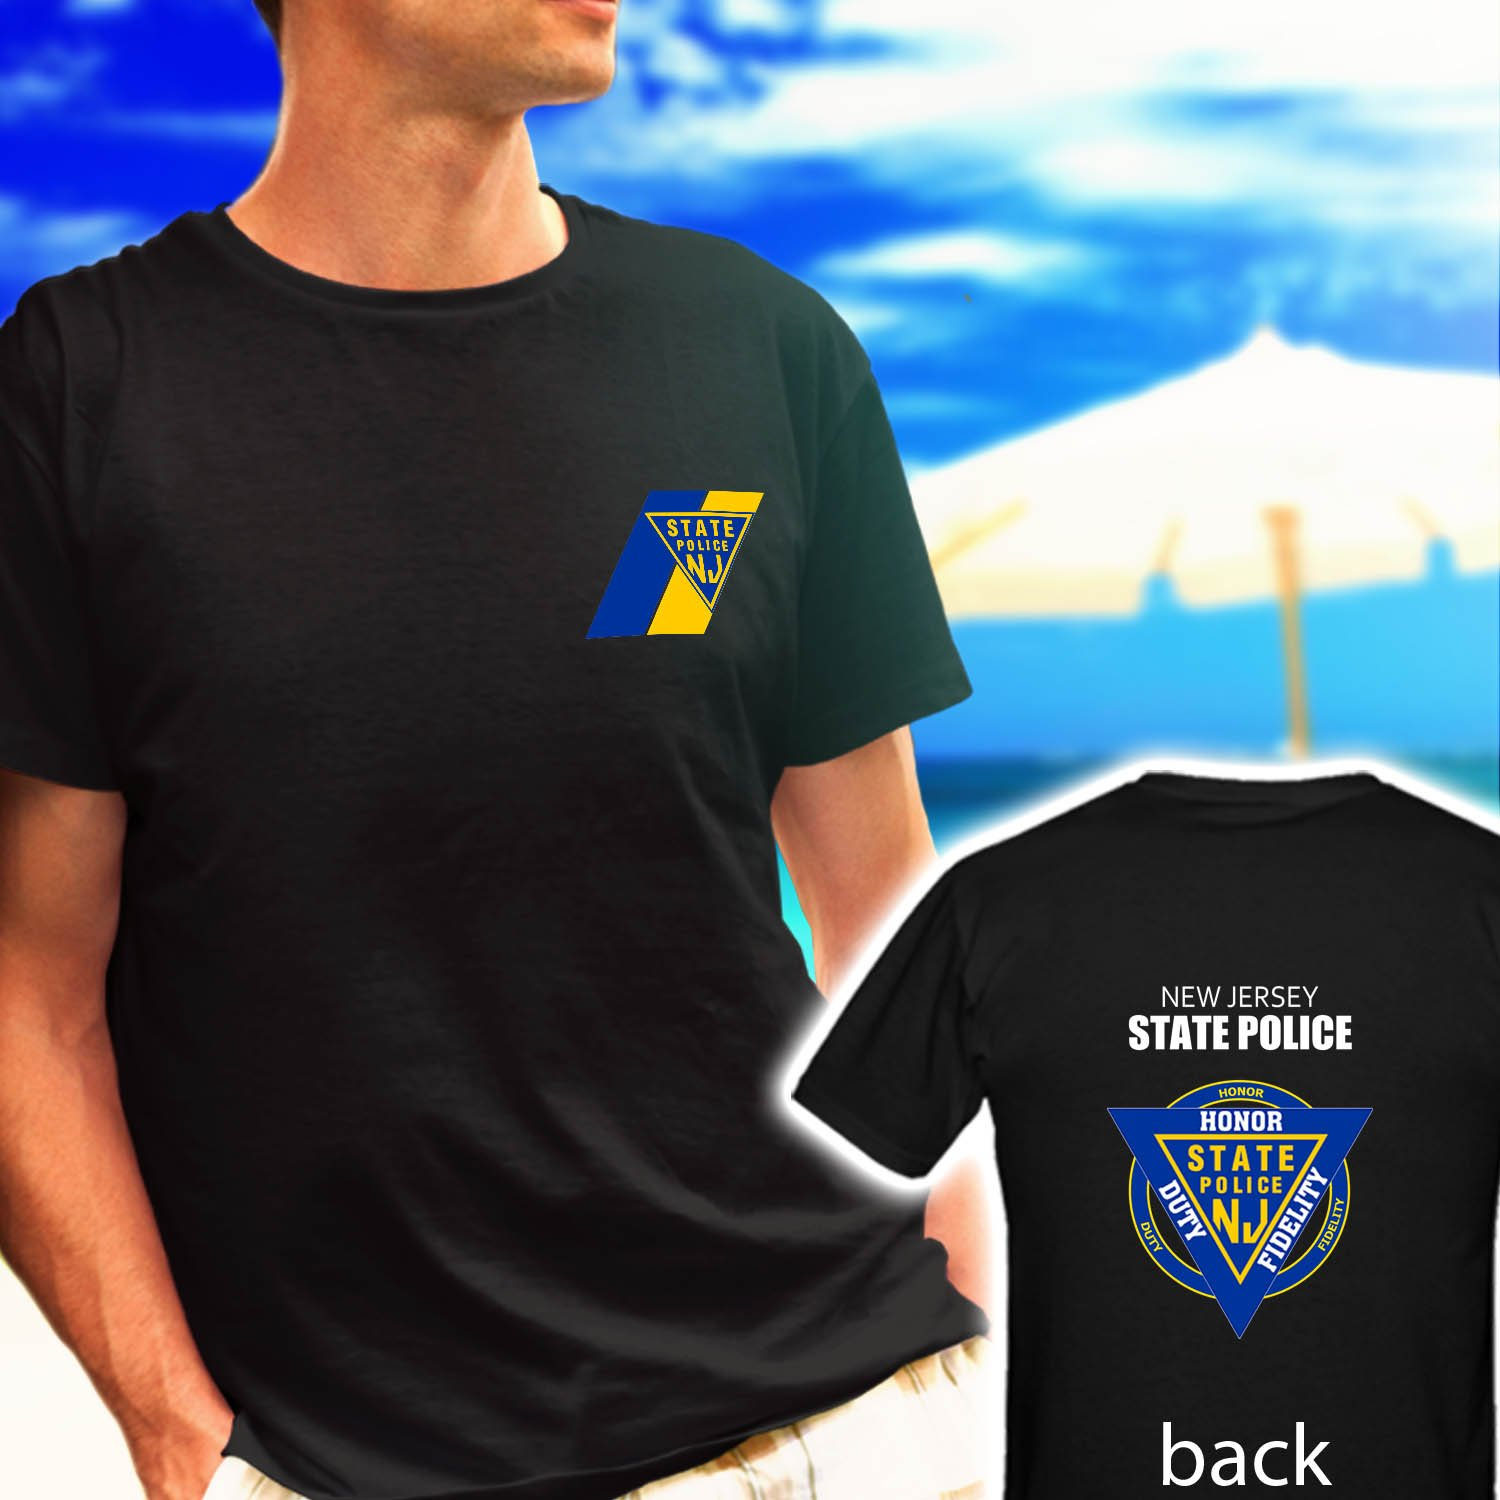 NEW JERSEY STATE POLICE HONOR DUTY FIDELITY black t-shirt tshirt shirts tee SIZE XL